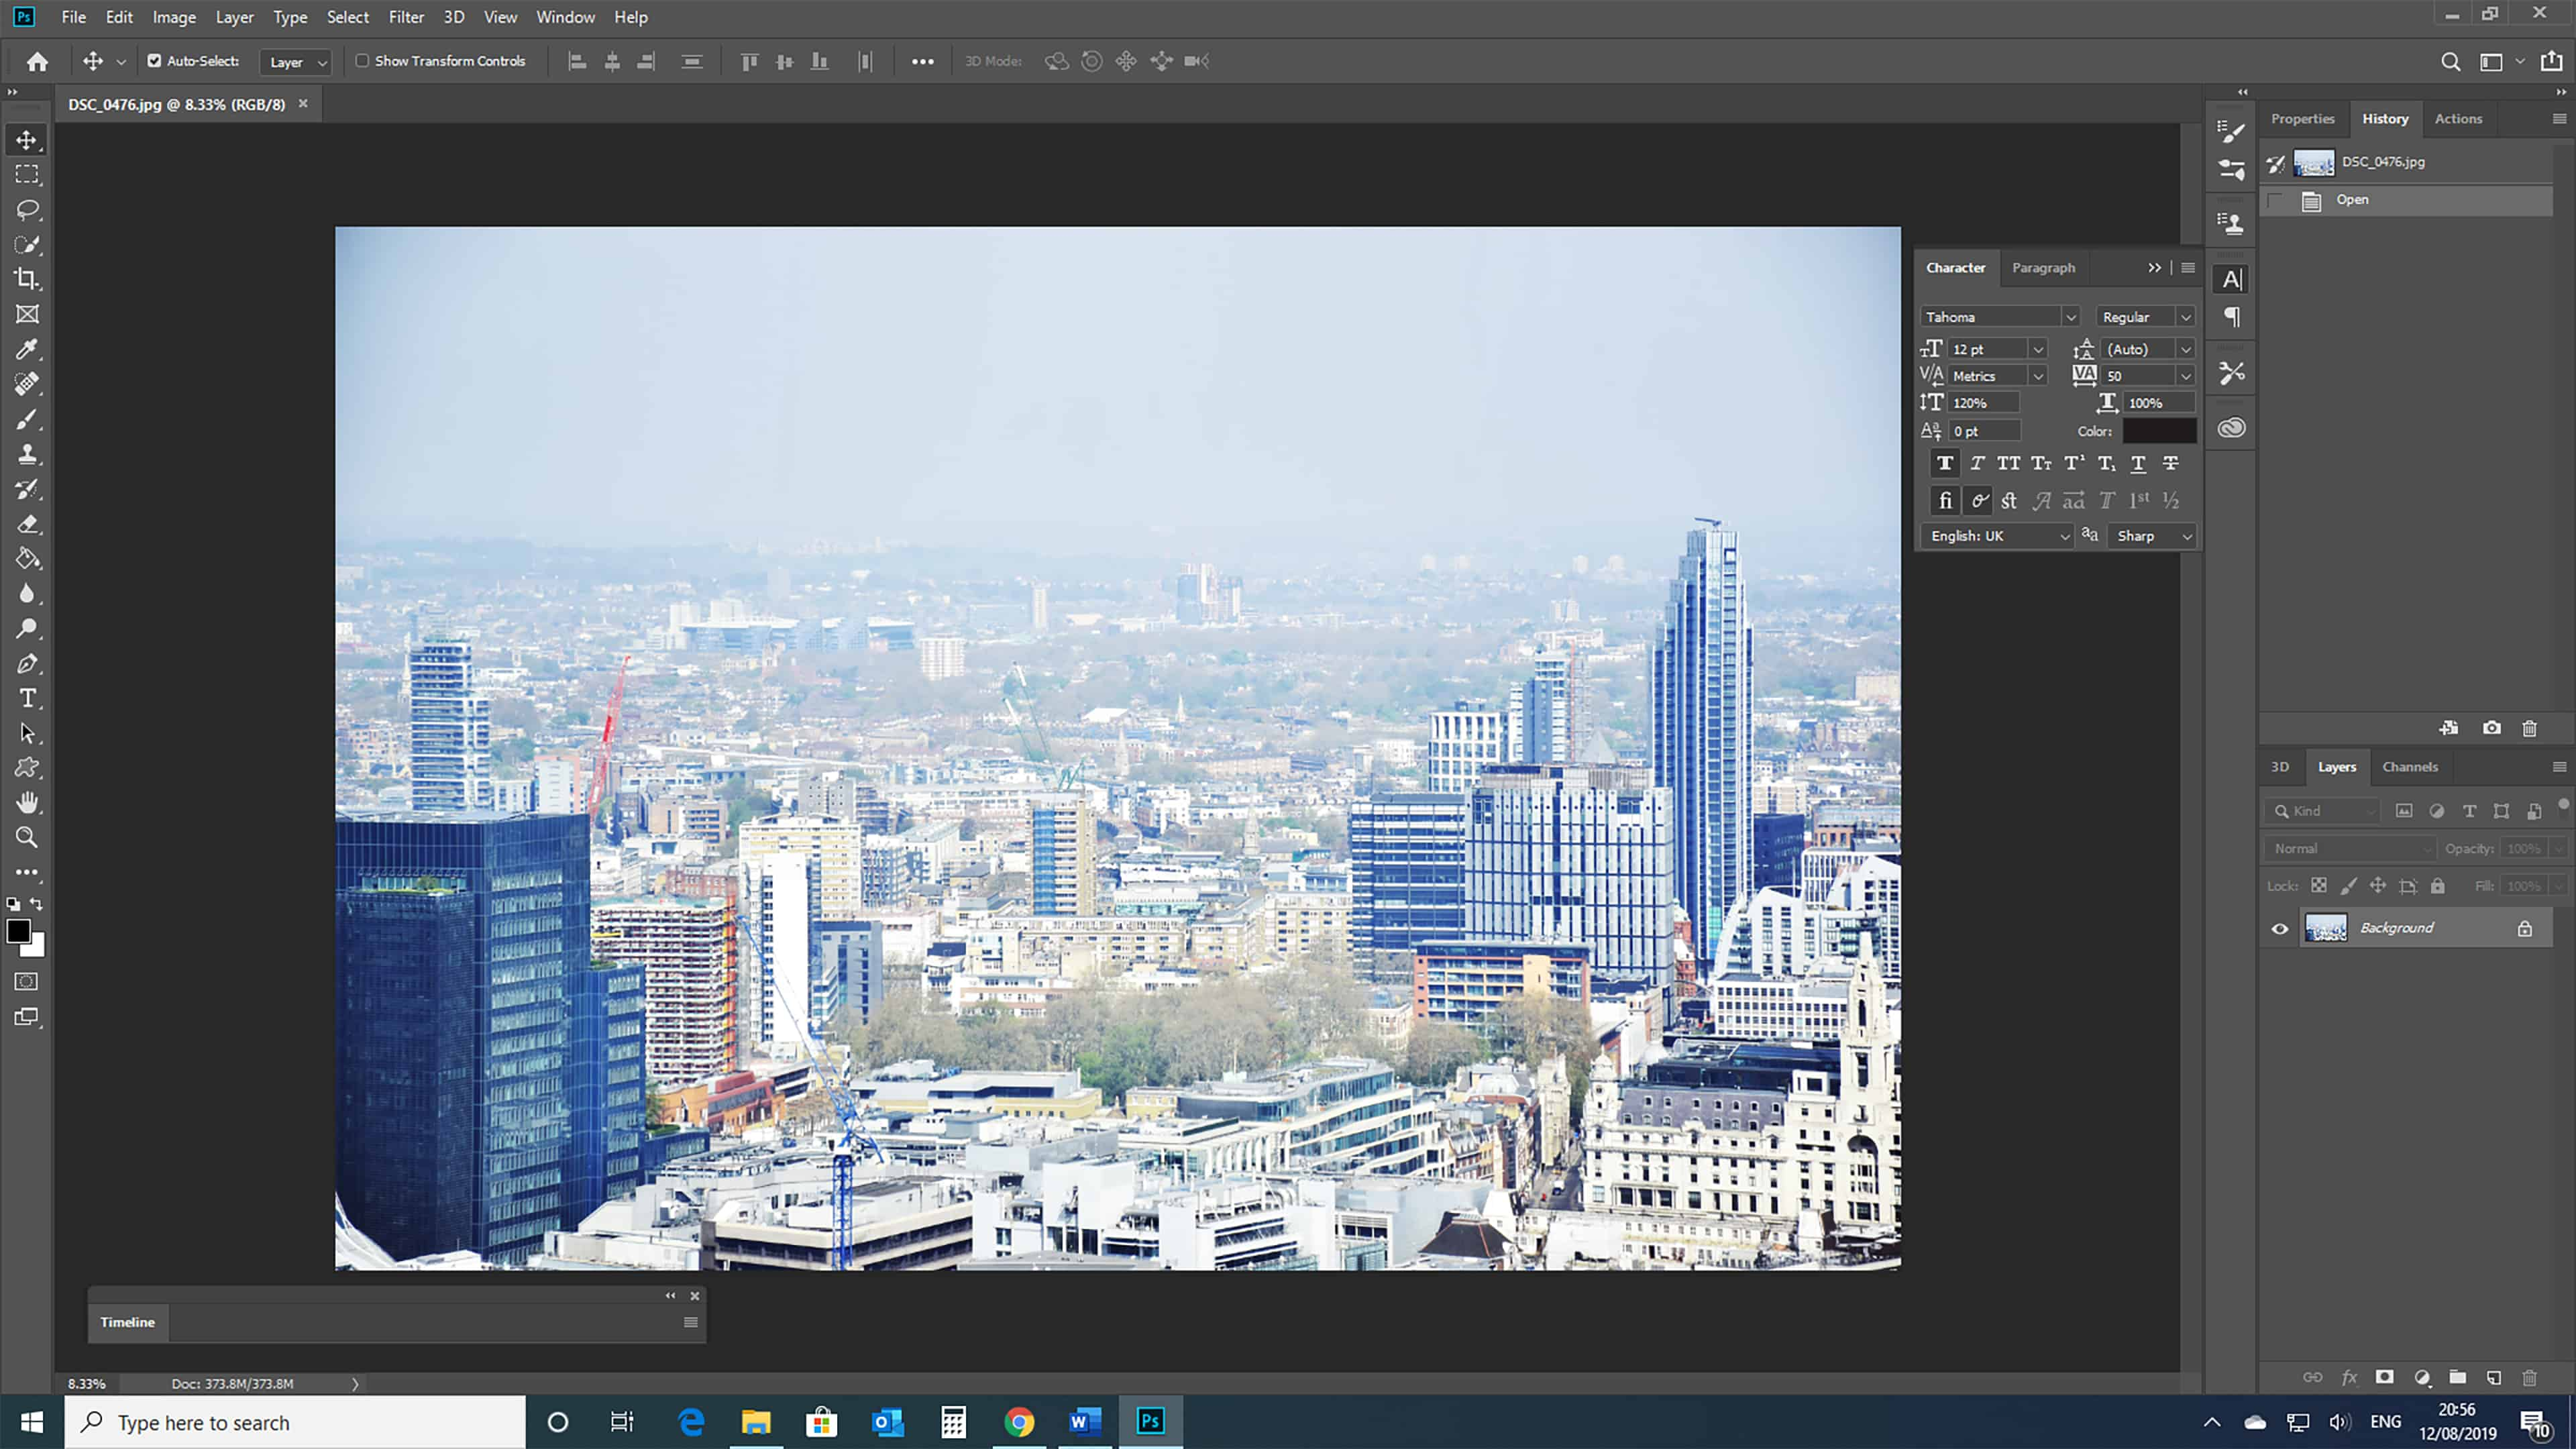 City picture open in Photoshop